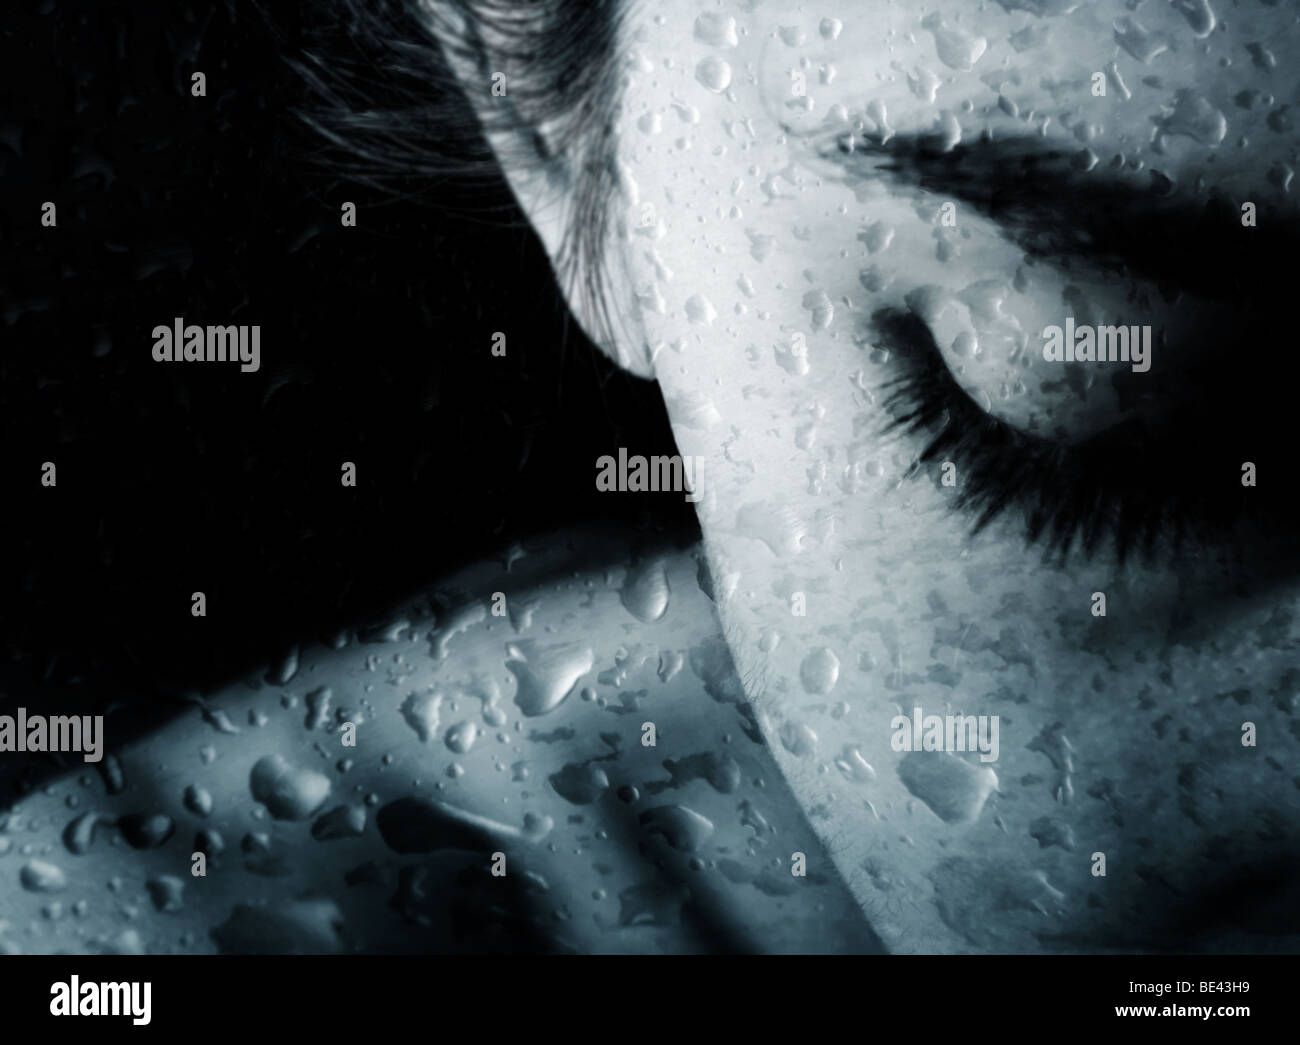 Young woman behind the glass with the drops of rain - Stock Image